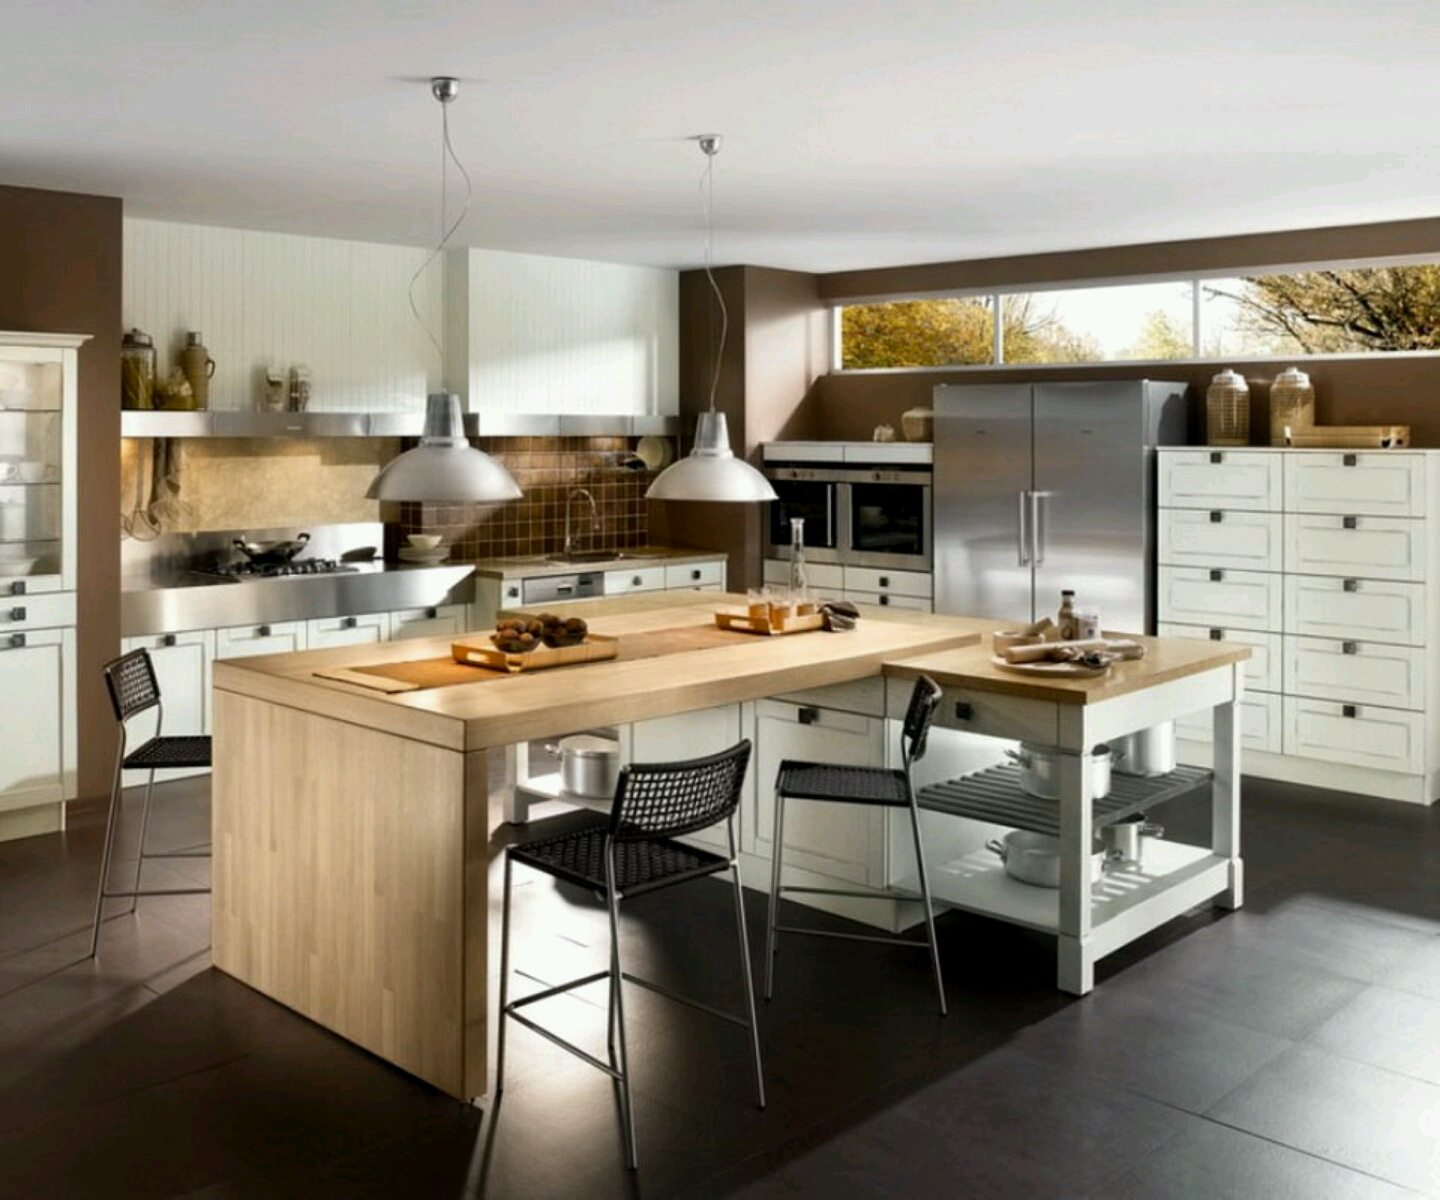 New home designs latest modern kitchen designs ideas for Contemporary kitchen style